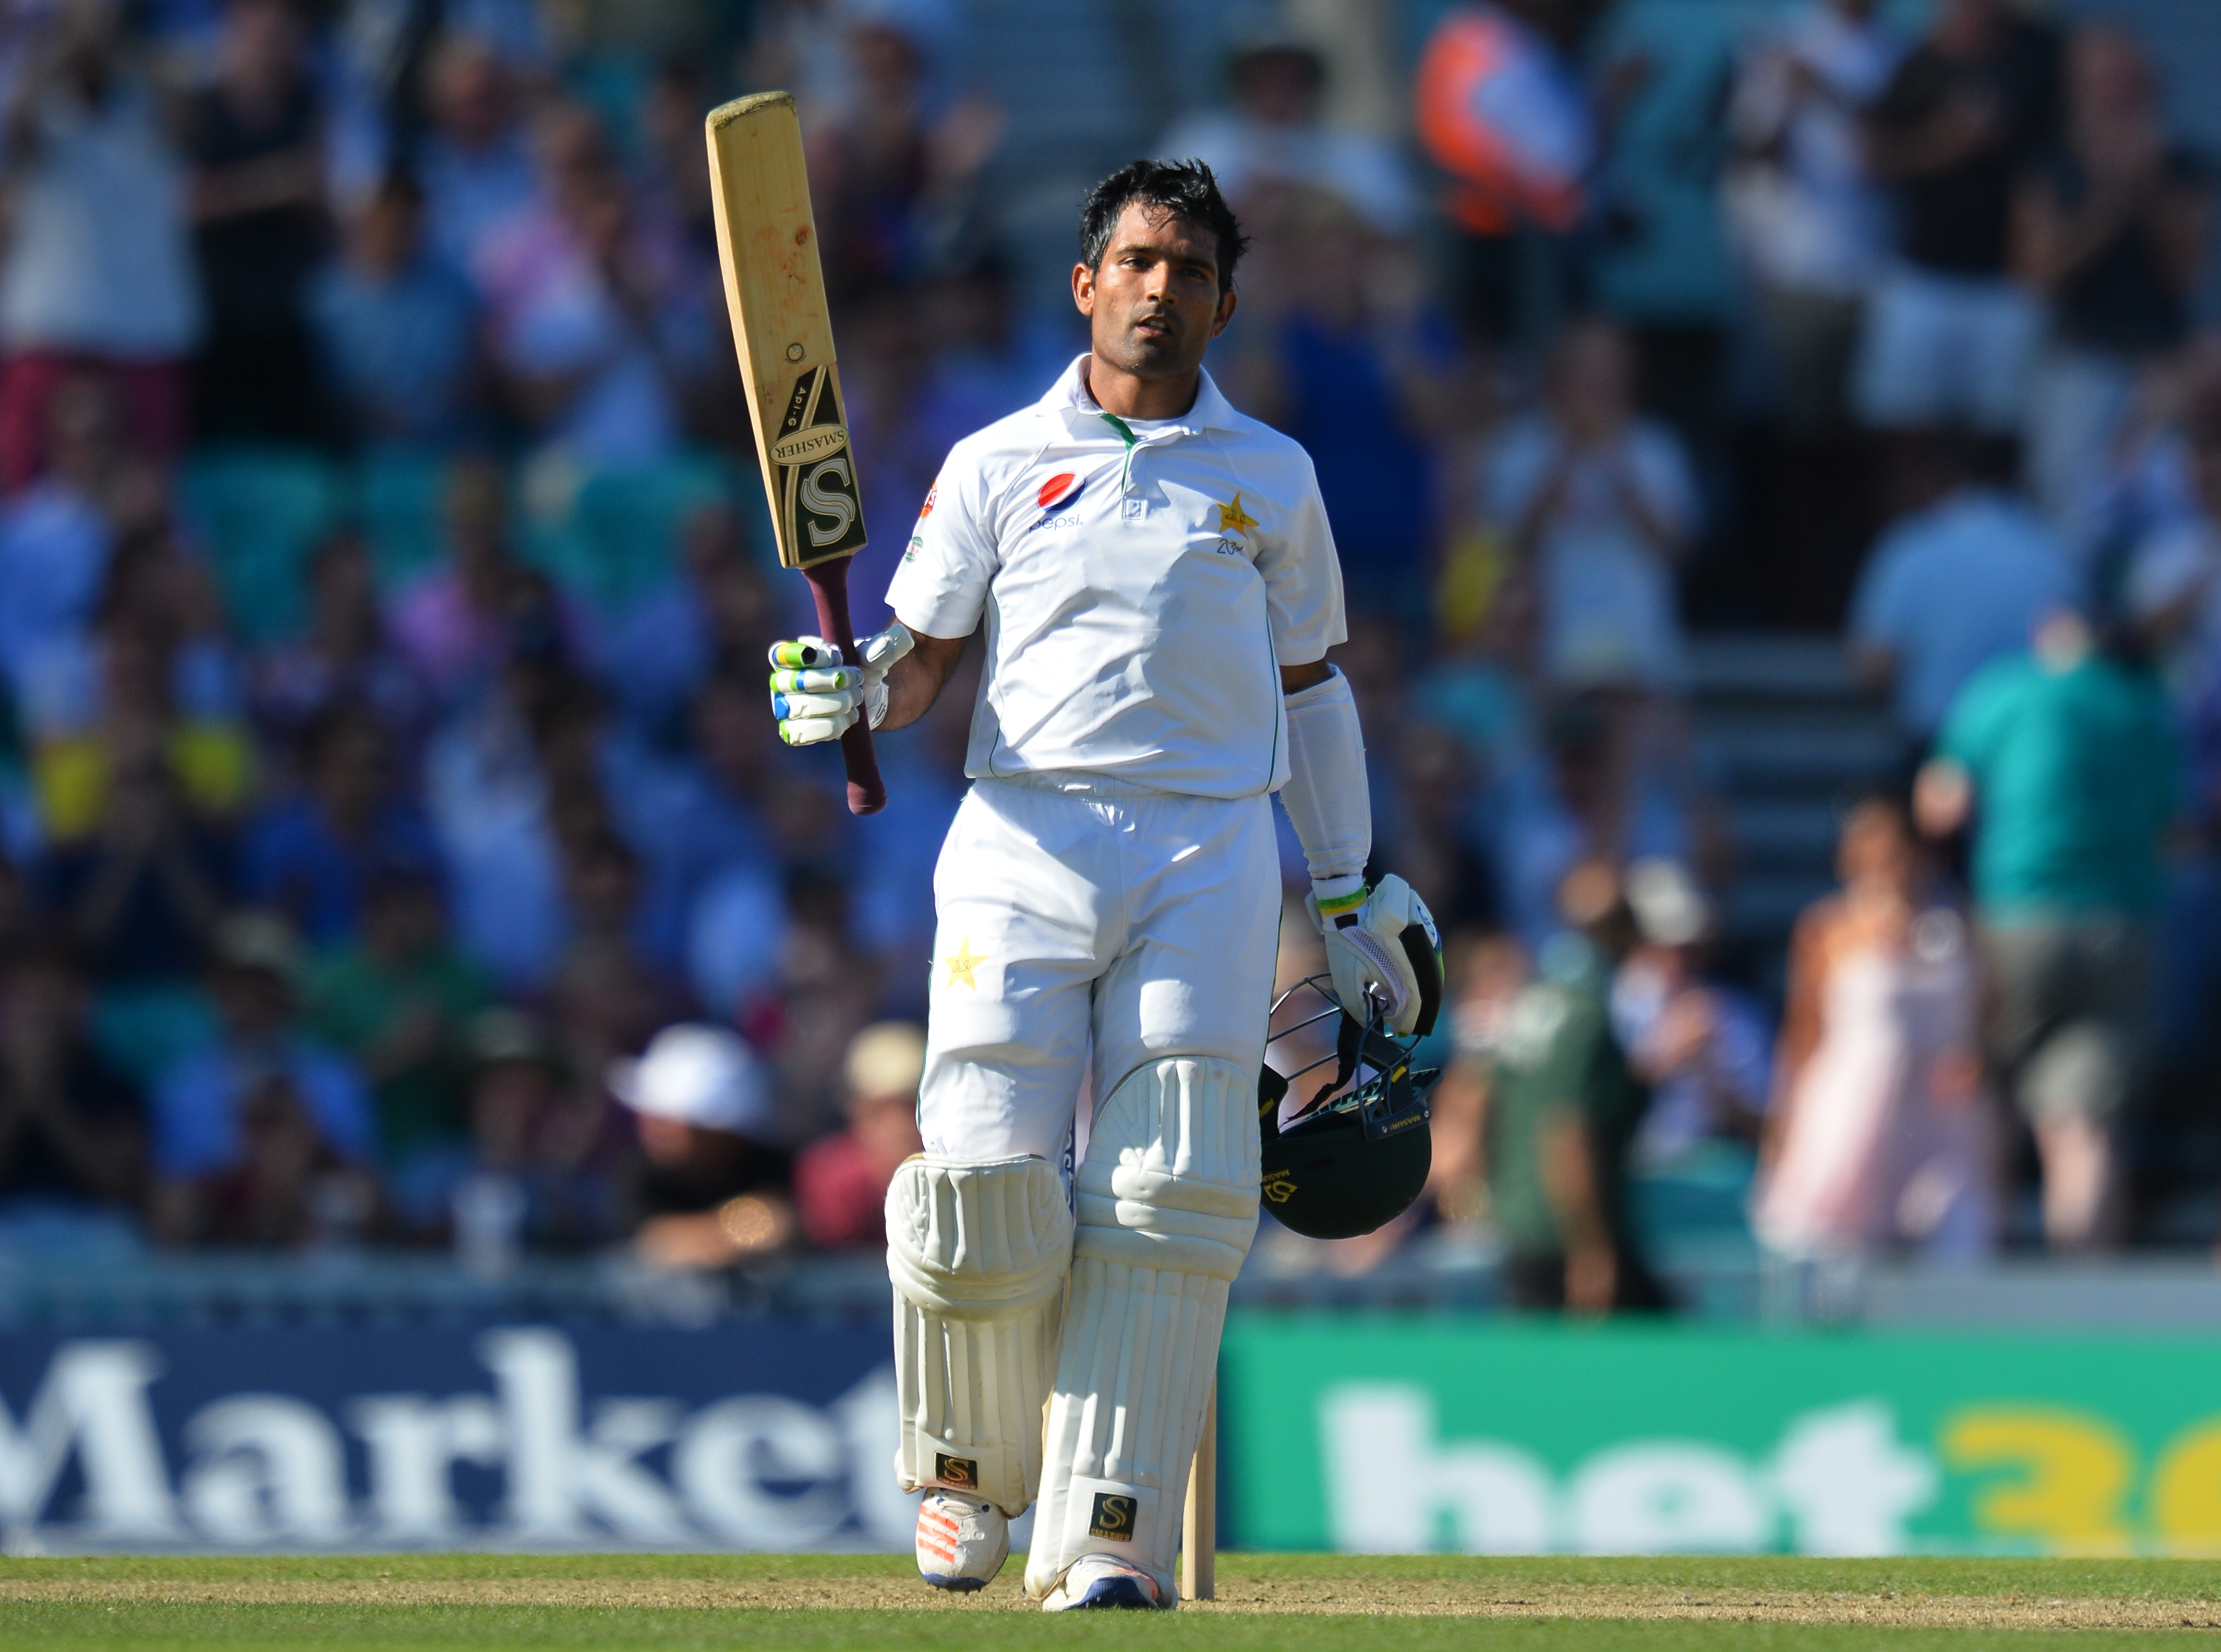 Pakistan's Asad Shafiq celebrates making a century (100 runs) on the second day of the fourth test cricket match between England and Pakistan at the Oval in London on August 12, 2016.   / AFP PHOTO / GLYN KIRK / RESTRICTED TO EDITORIAL USE. NO ASSOCIATION WITH DIRECT COMPETITOR OF SPONSOR, PARTNER, OR SUPPLIER OF THE ECB